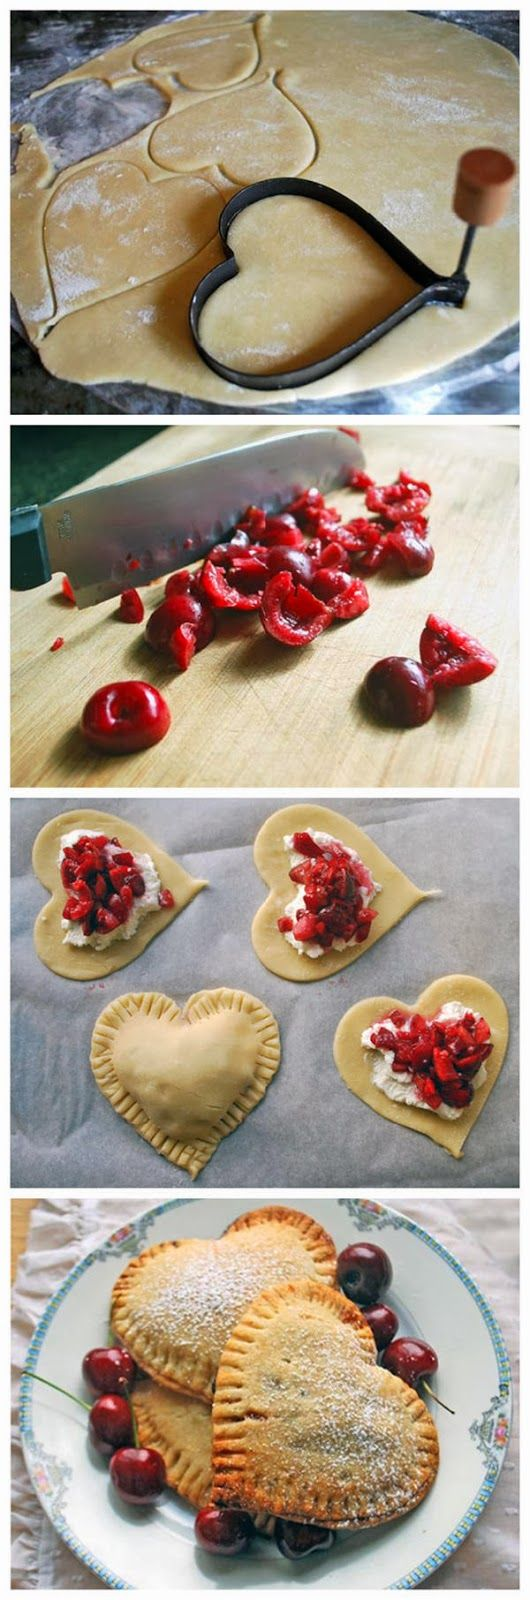 Sweetheart Cherry Pies (I'm SO going to use OTHER fruits like strawberries, peaches an stuff.....not really into cherries)